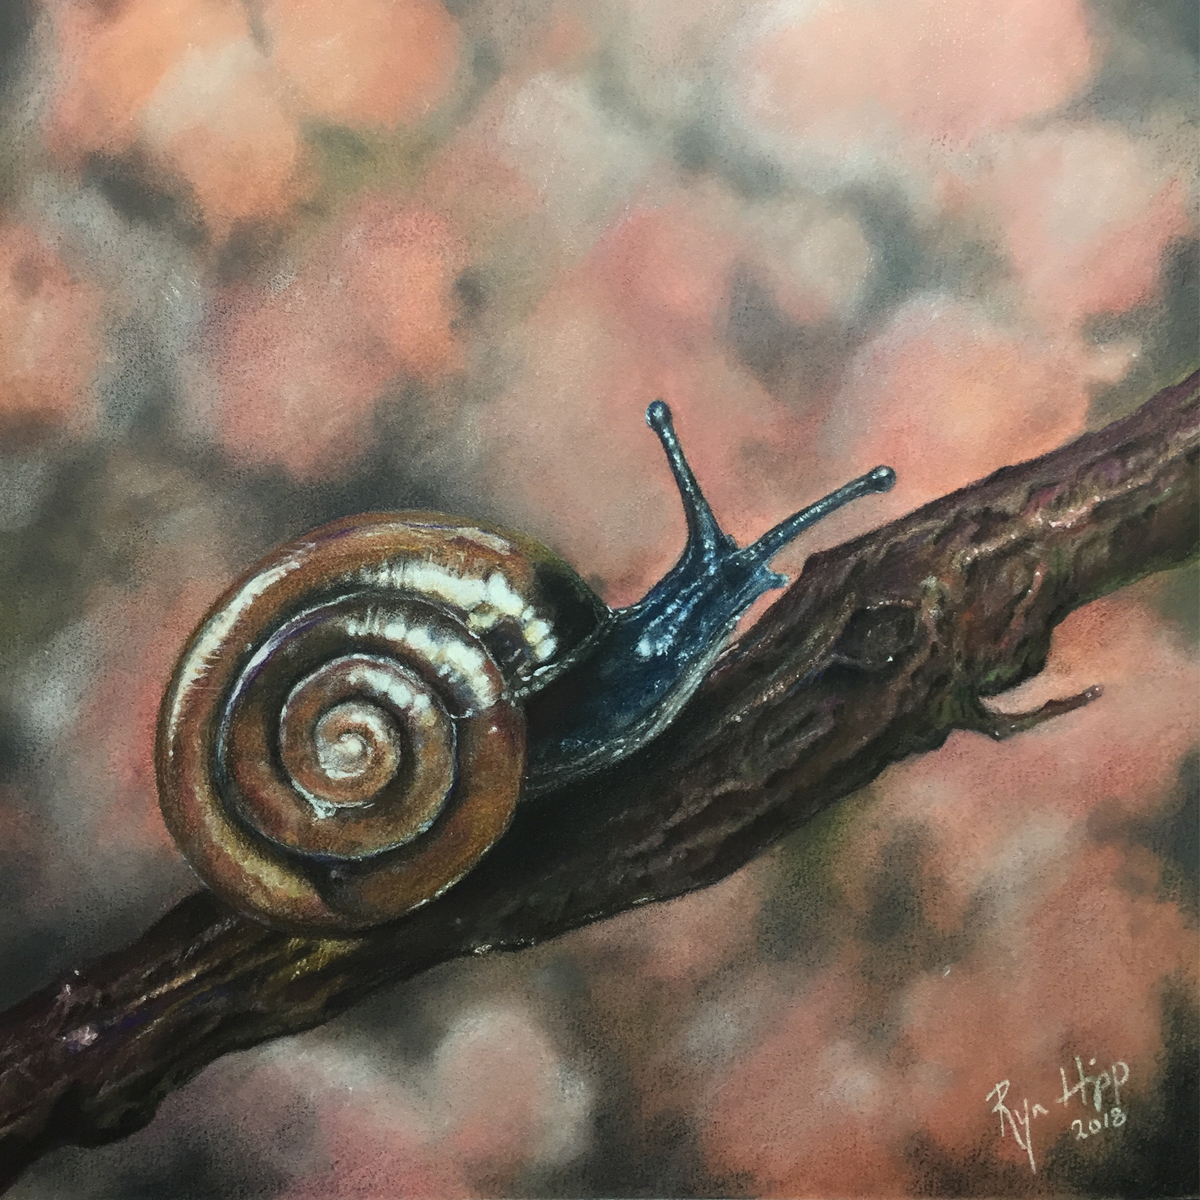 Colored pencil drawing of a snail on a branch.